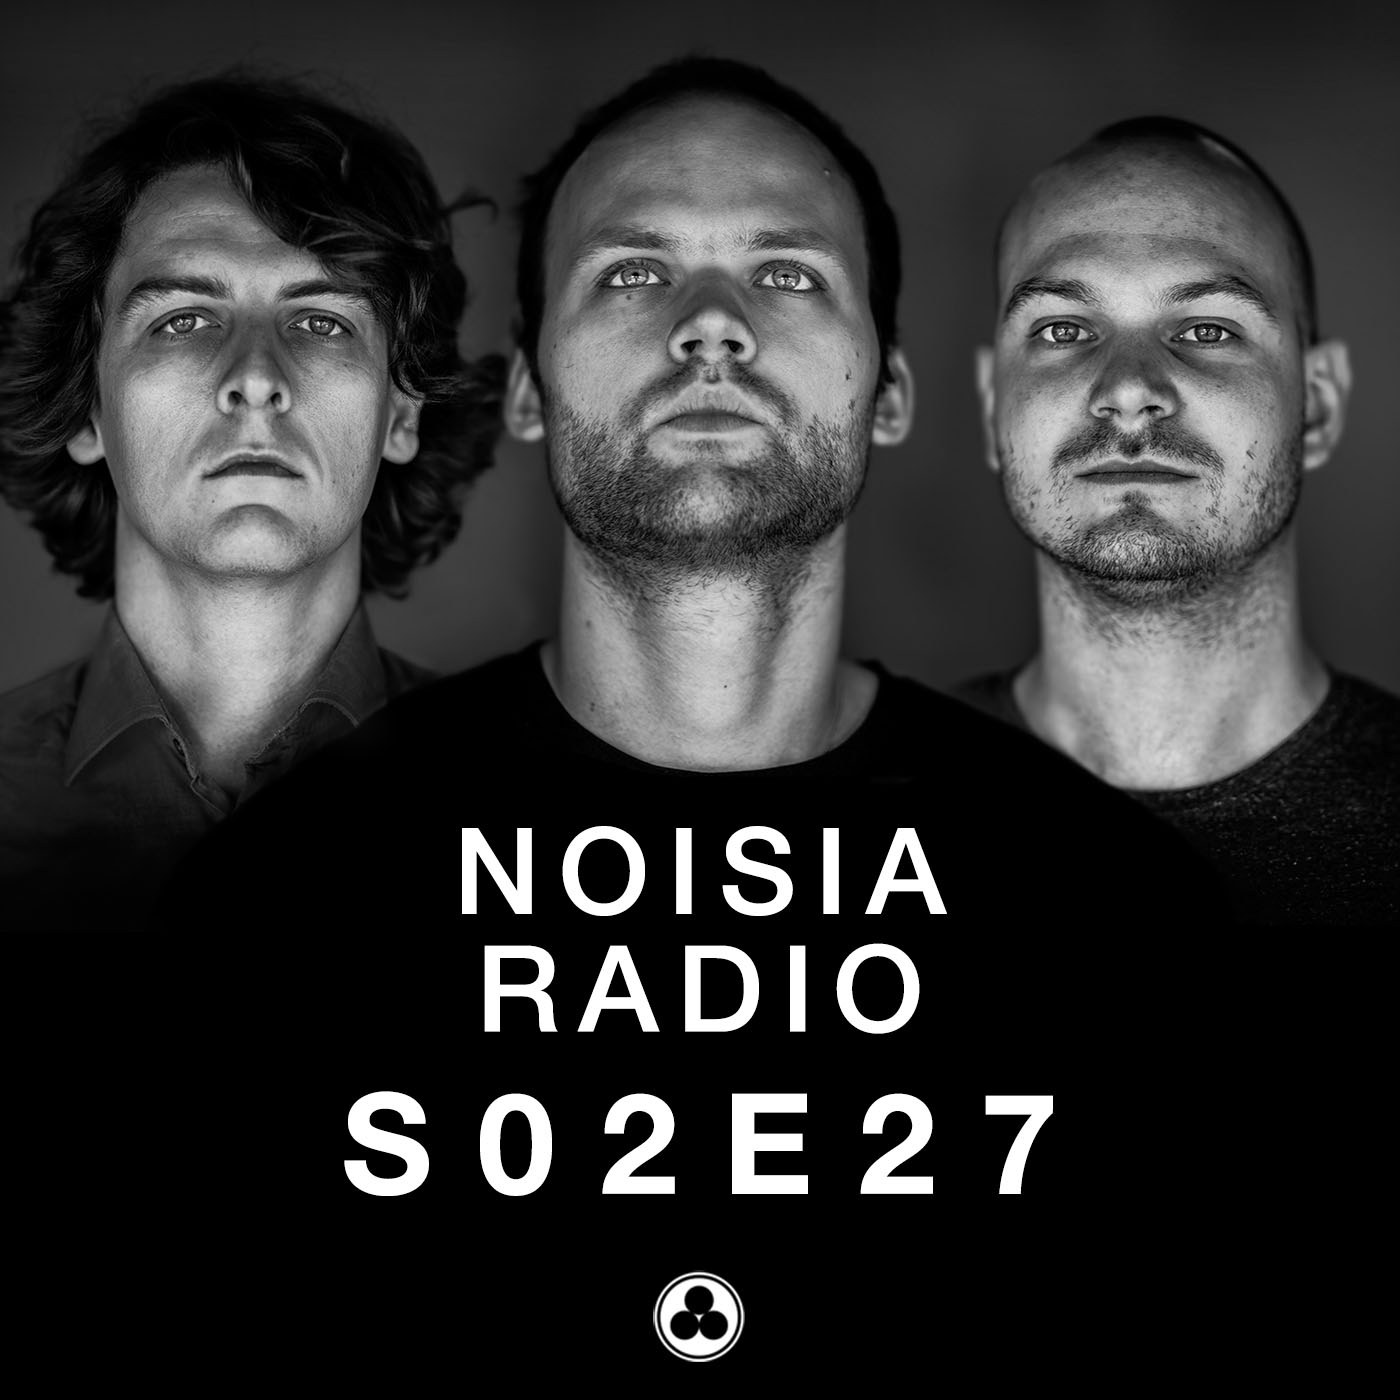 Noisia Radio S02E27